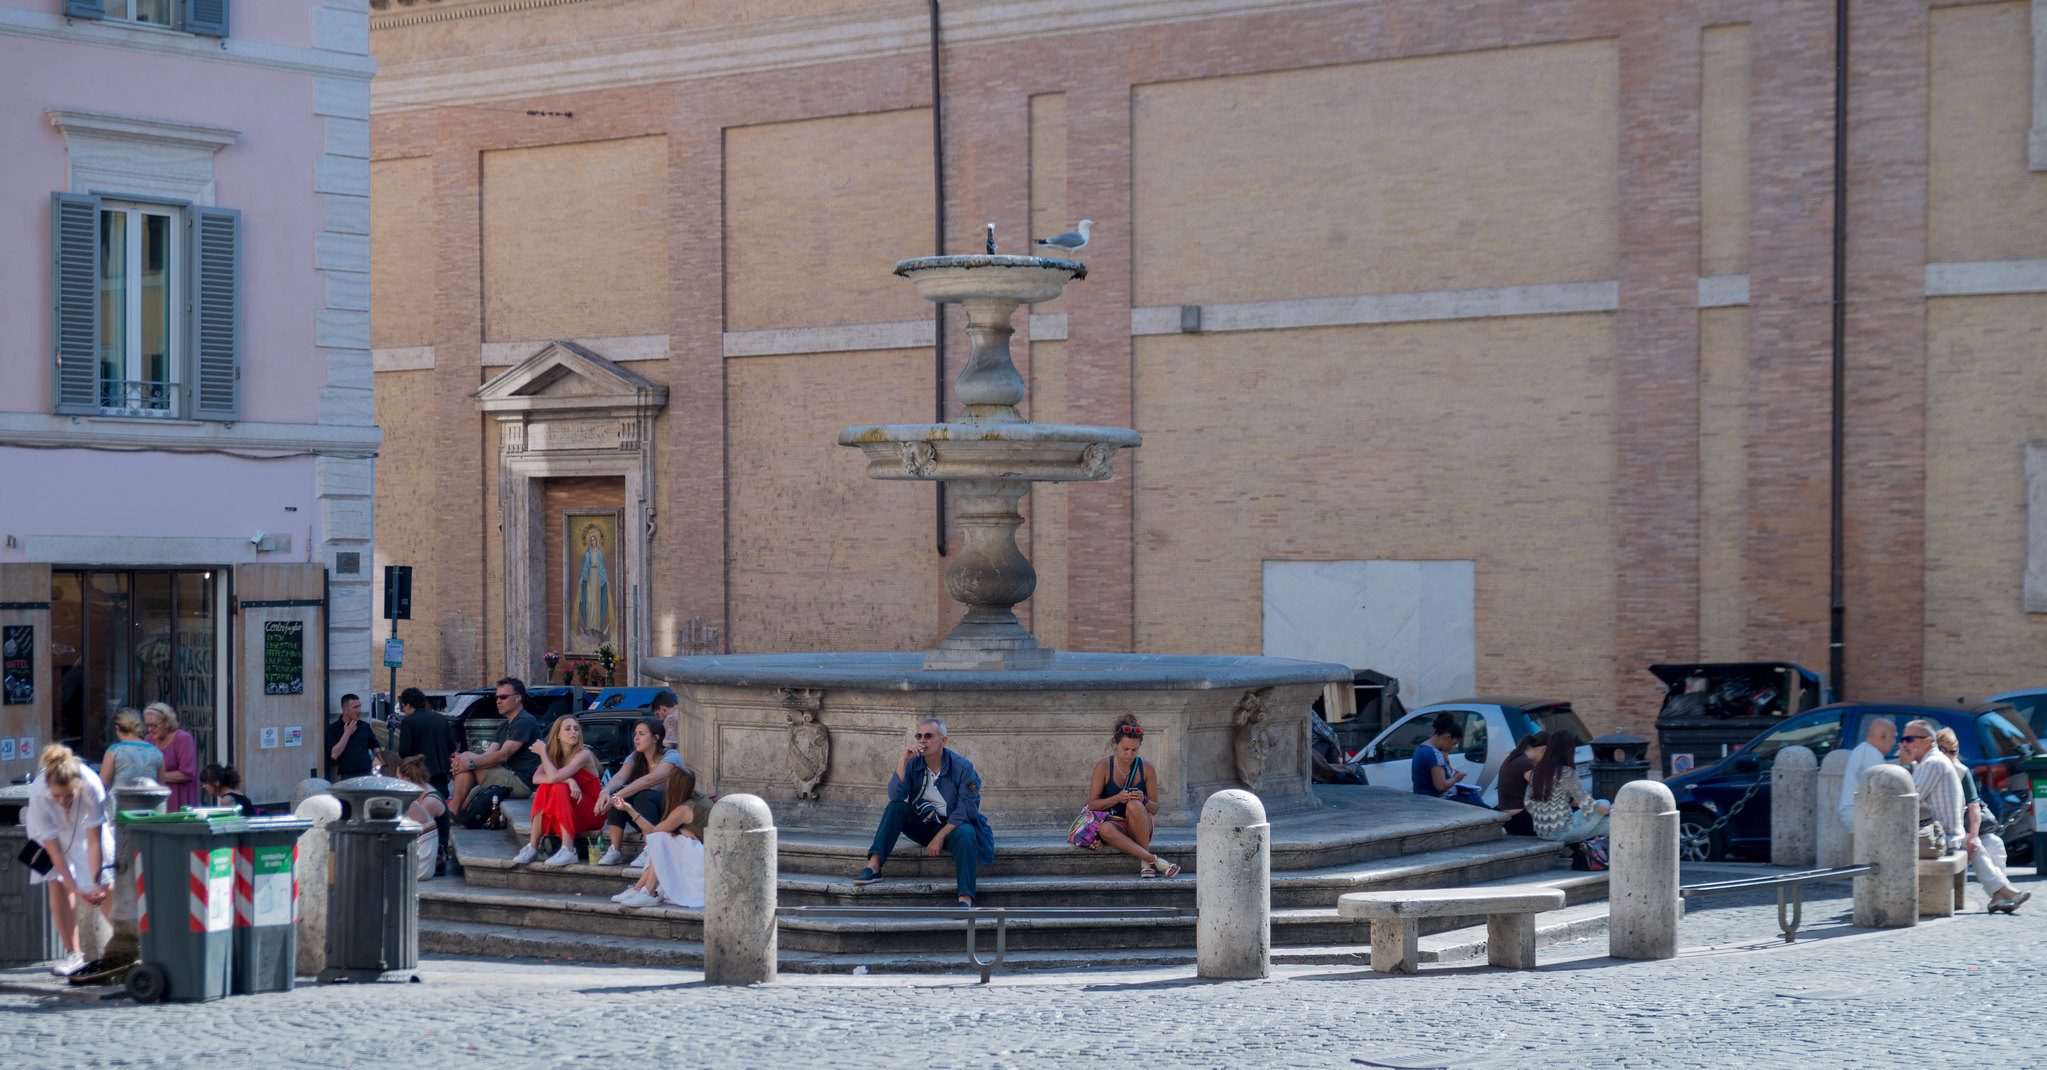 Street view of people sitting around a Roman fountain